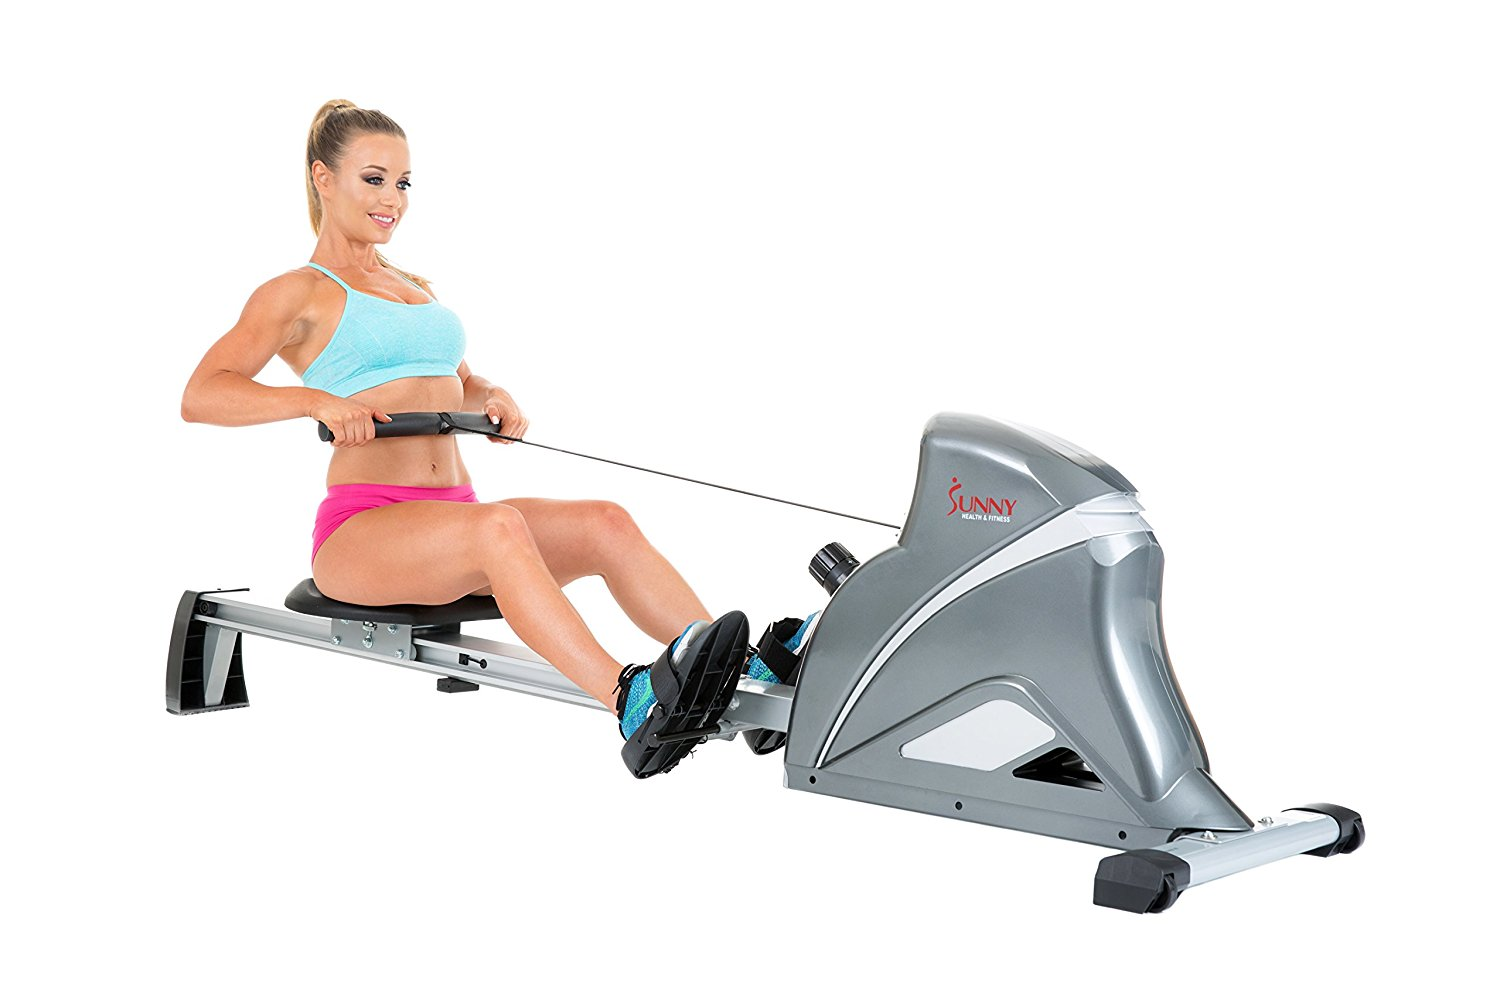 sunny-health-fitness-sf-rw5508-ultra-tension-magnetic-pro-rower